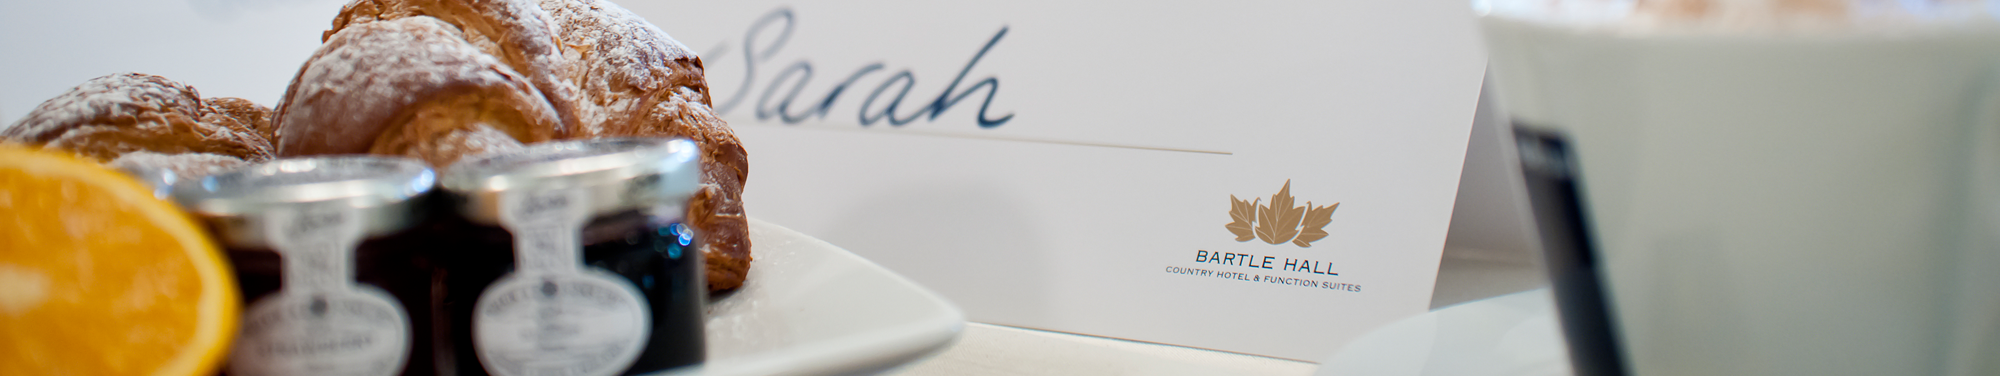 A close up image showing a table at breakfast with a sign, orange, croissants